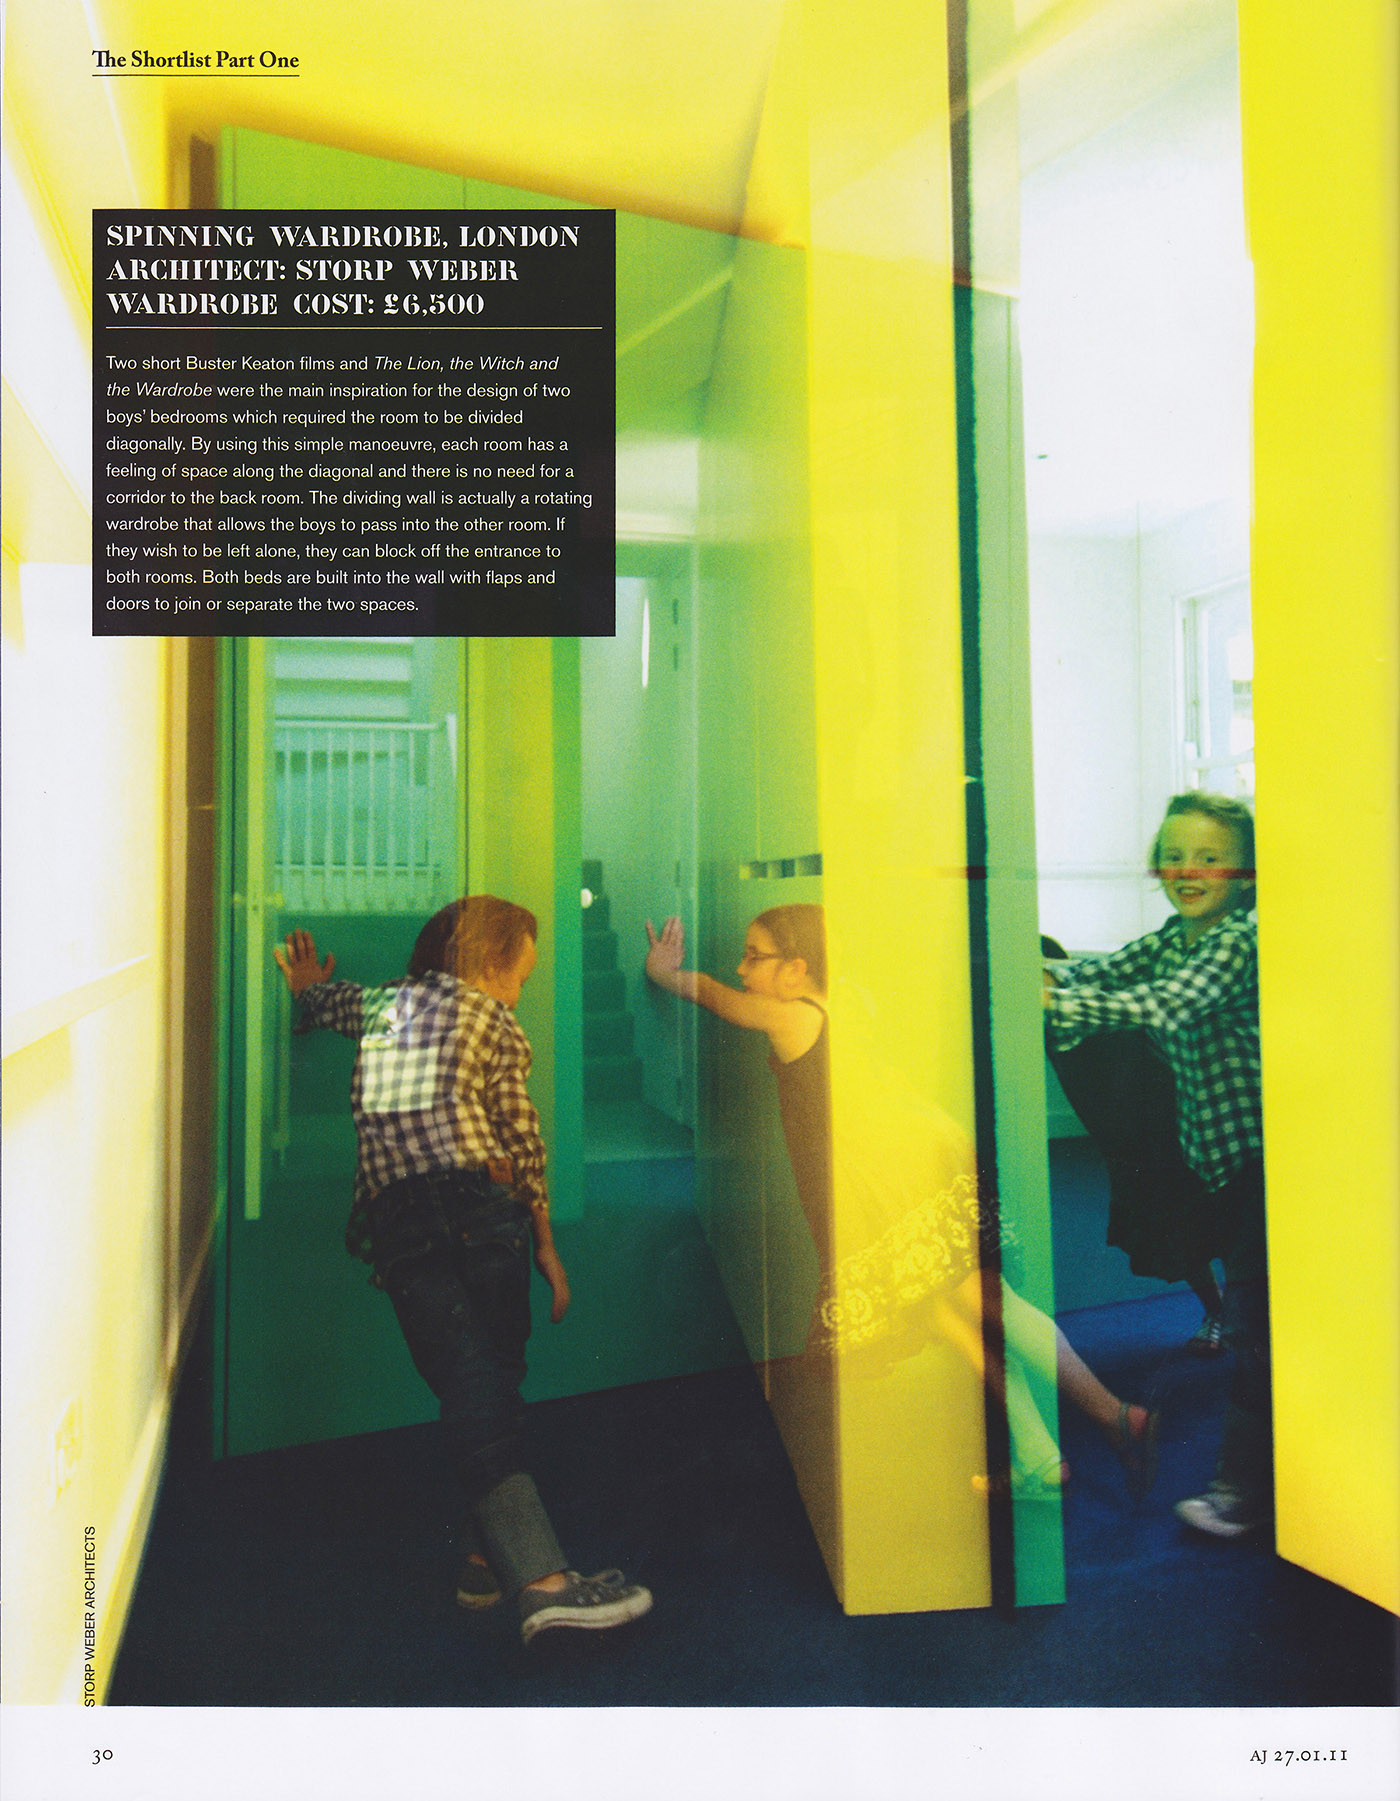 Architects Journal 01/2011, page 30, Small Building Awards Shortlisted.